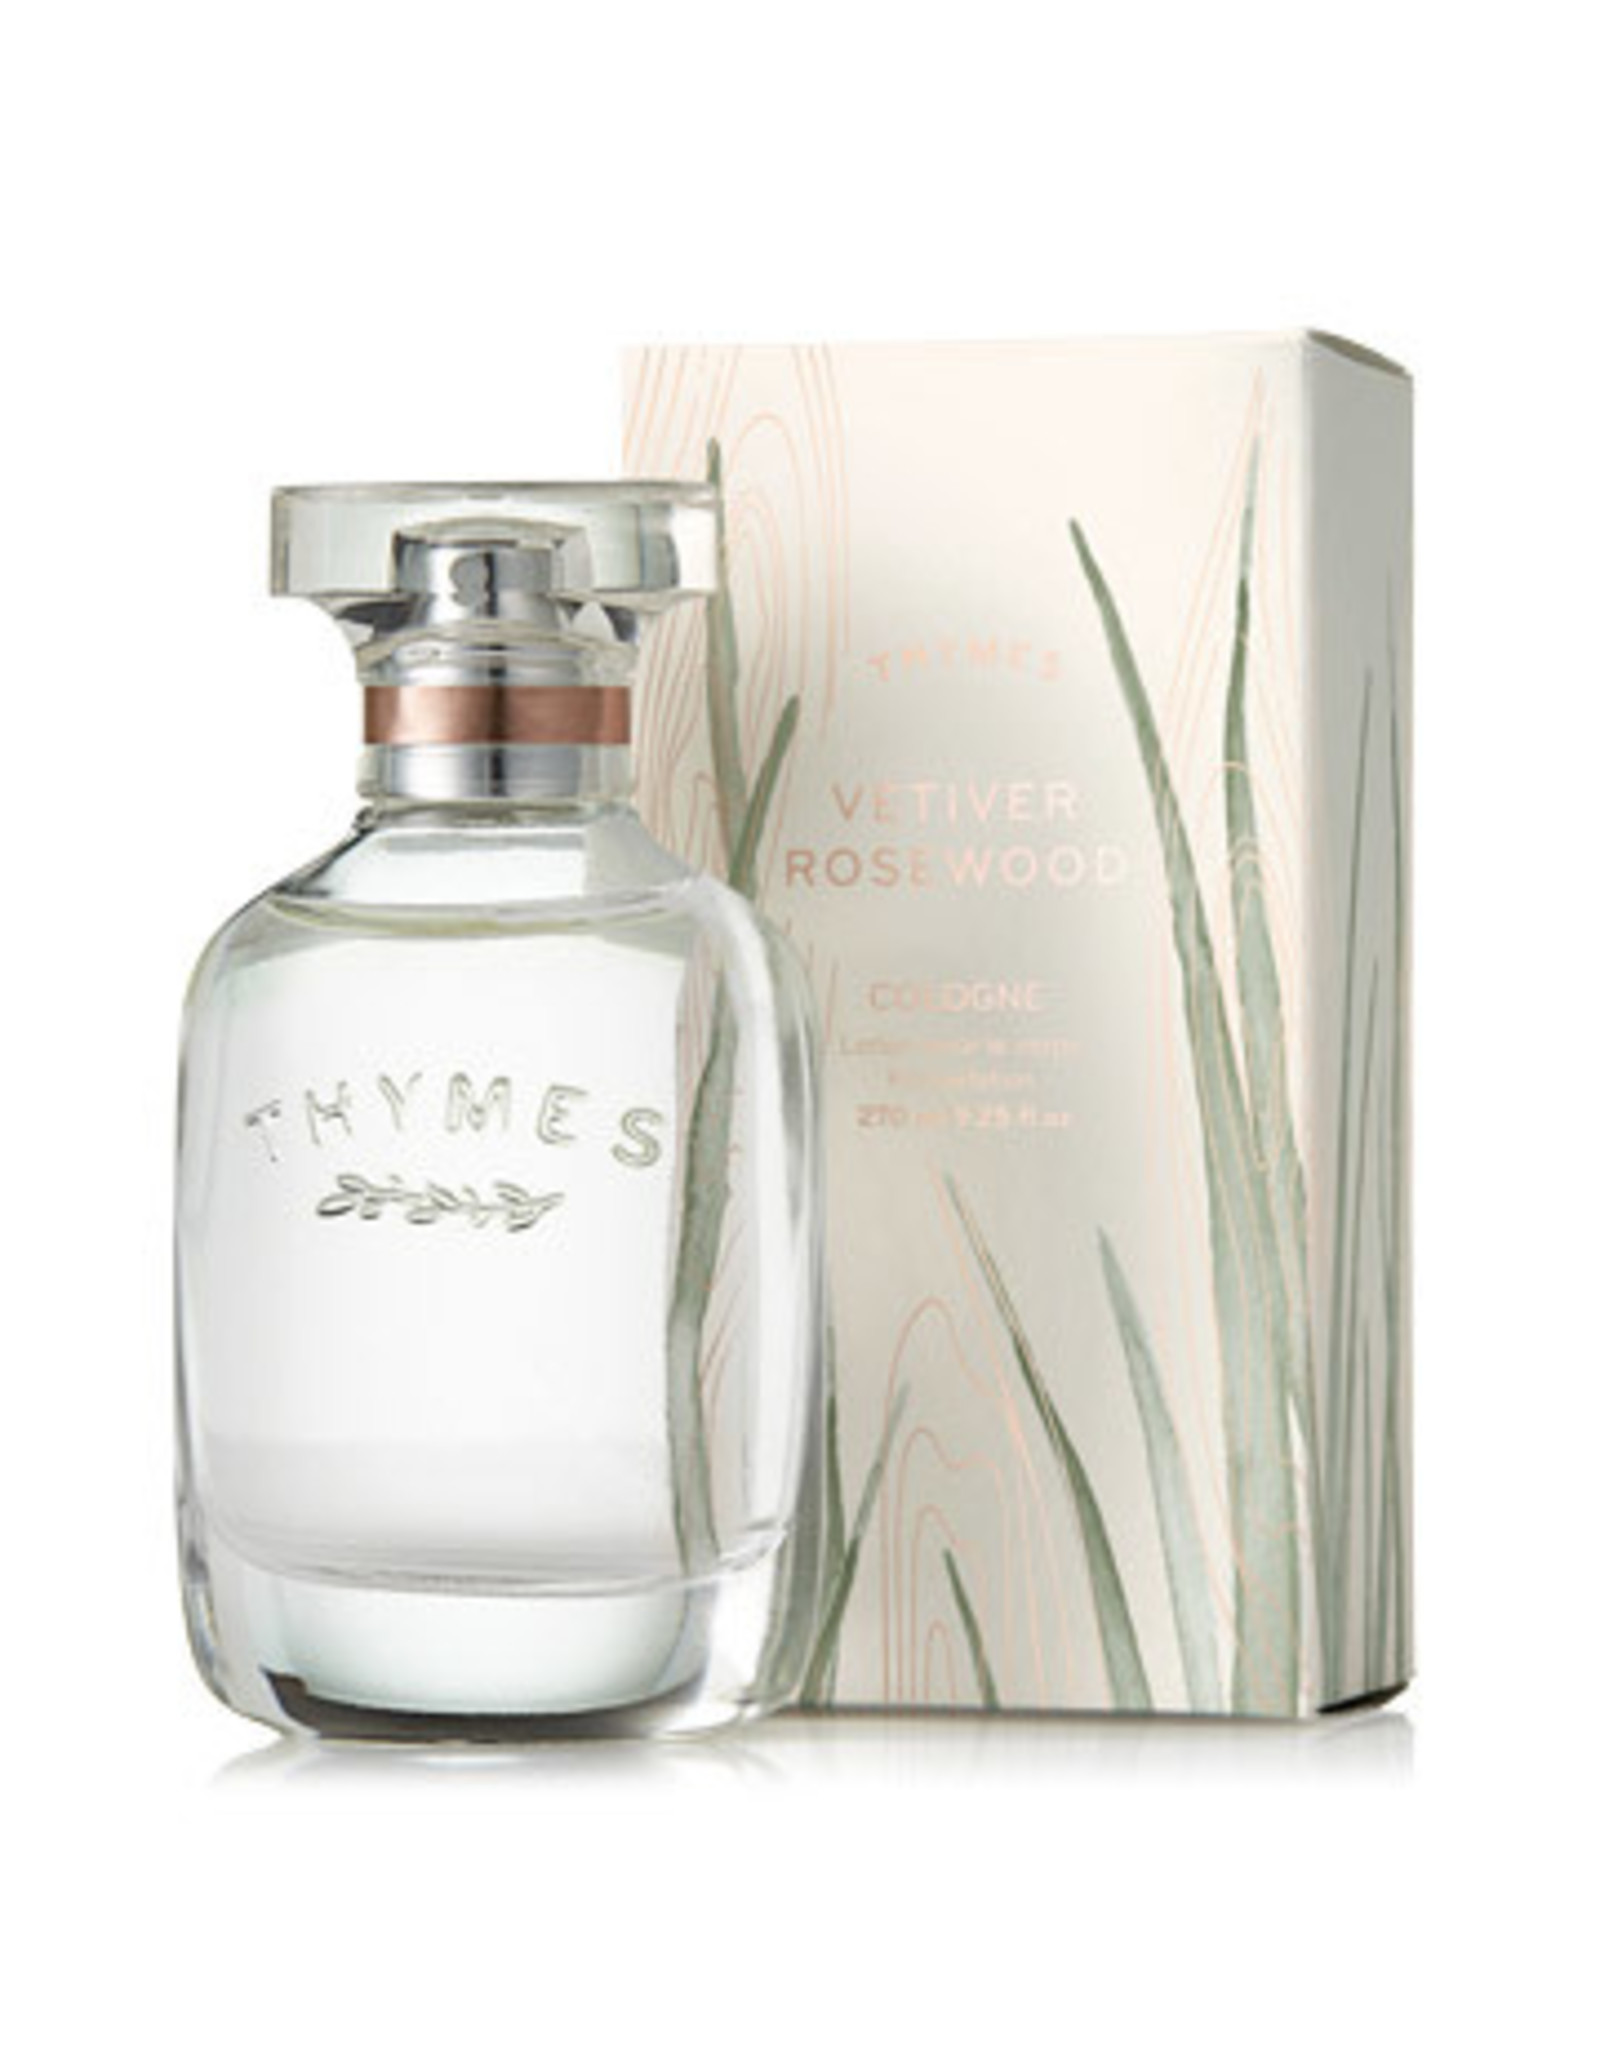 Thymes Vetiver Rosewood Cologne